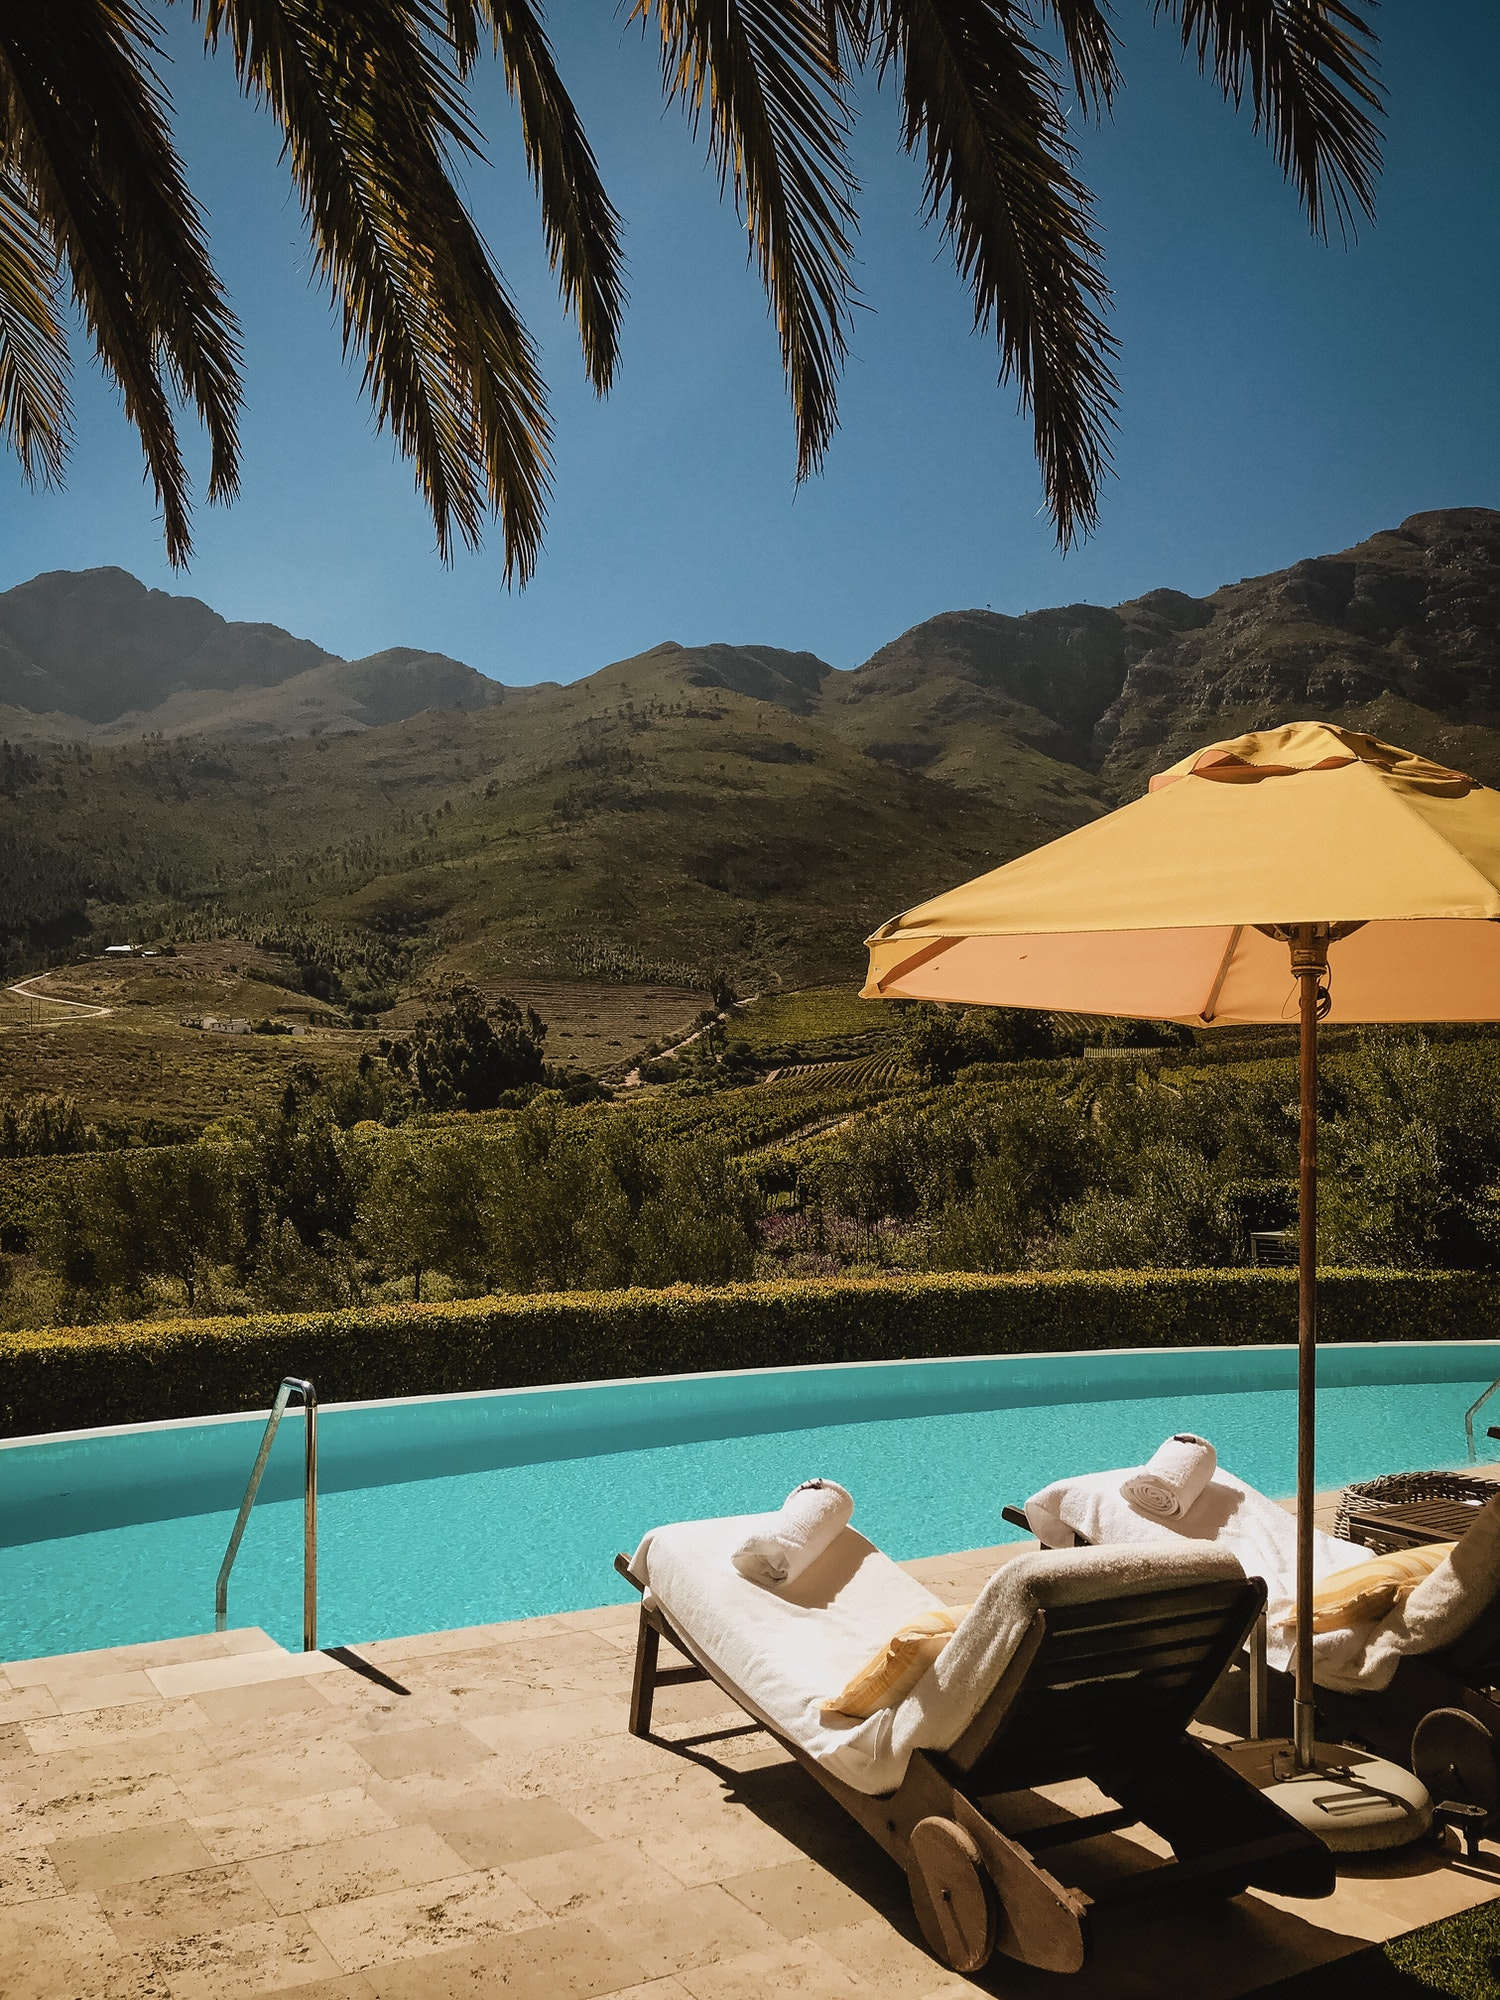 Swimming pool day beds with a gorgeous view and a yellow umbrella for some shade